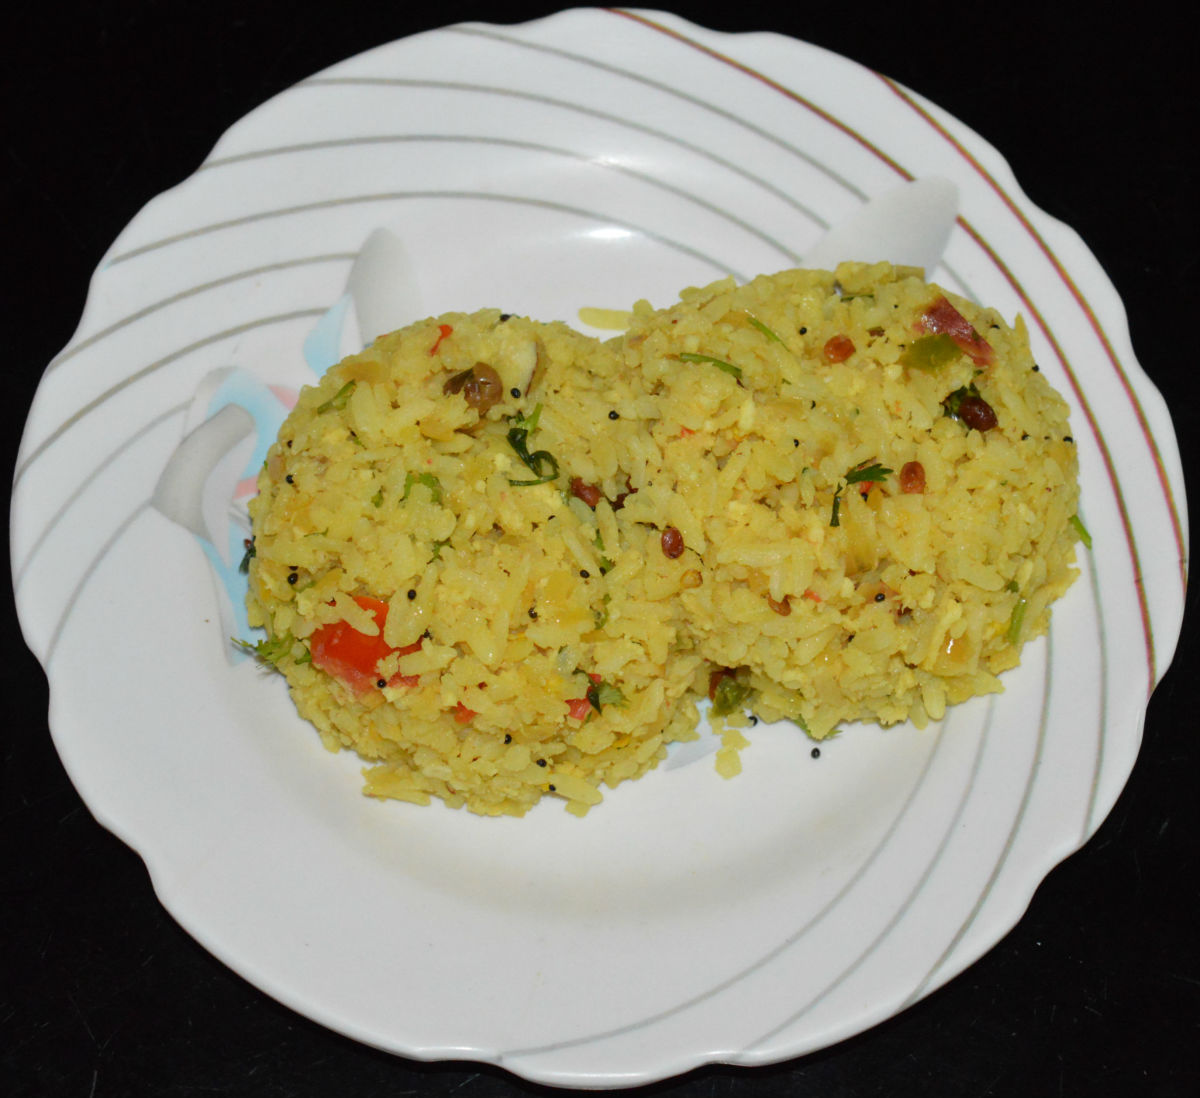 Your favorite beaten rice upma is ready! Serve this yummy upma as is or with a coconut chutney on the side. Enjoy the heavenly taste!